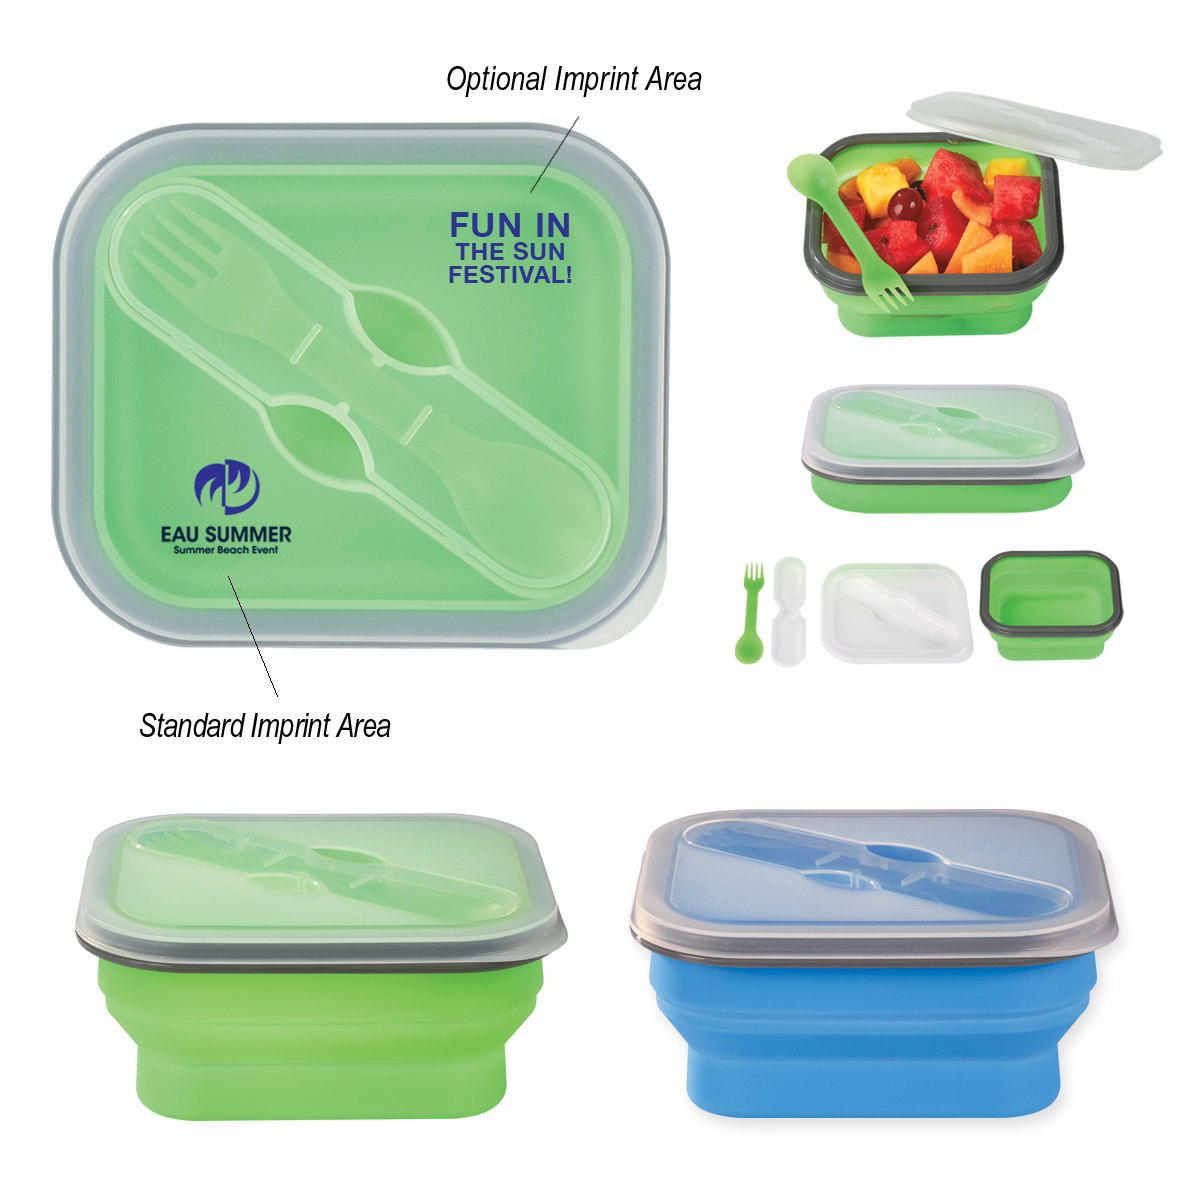 574265748-816 - Collapsible Food Container With Dual Utensil - thumbnail